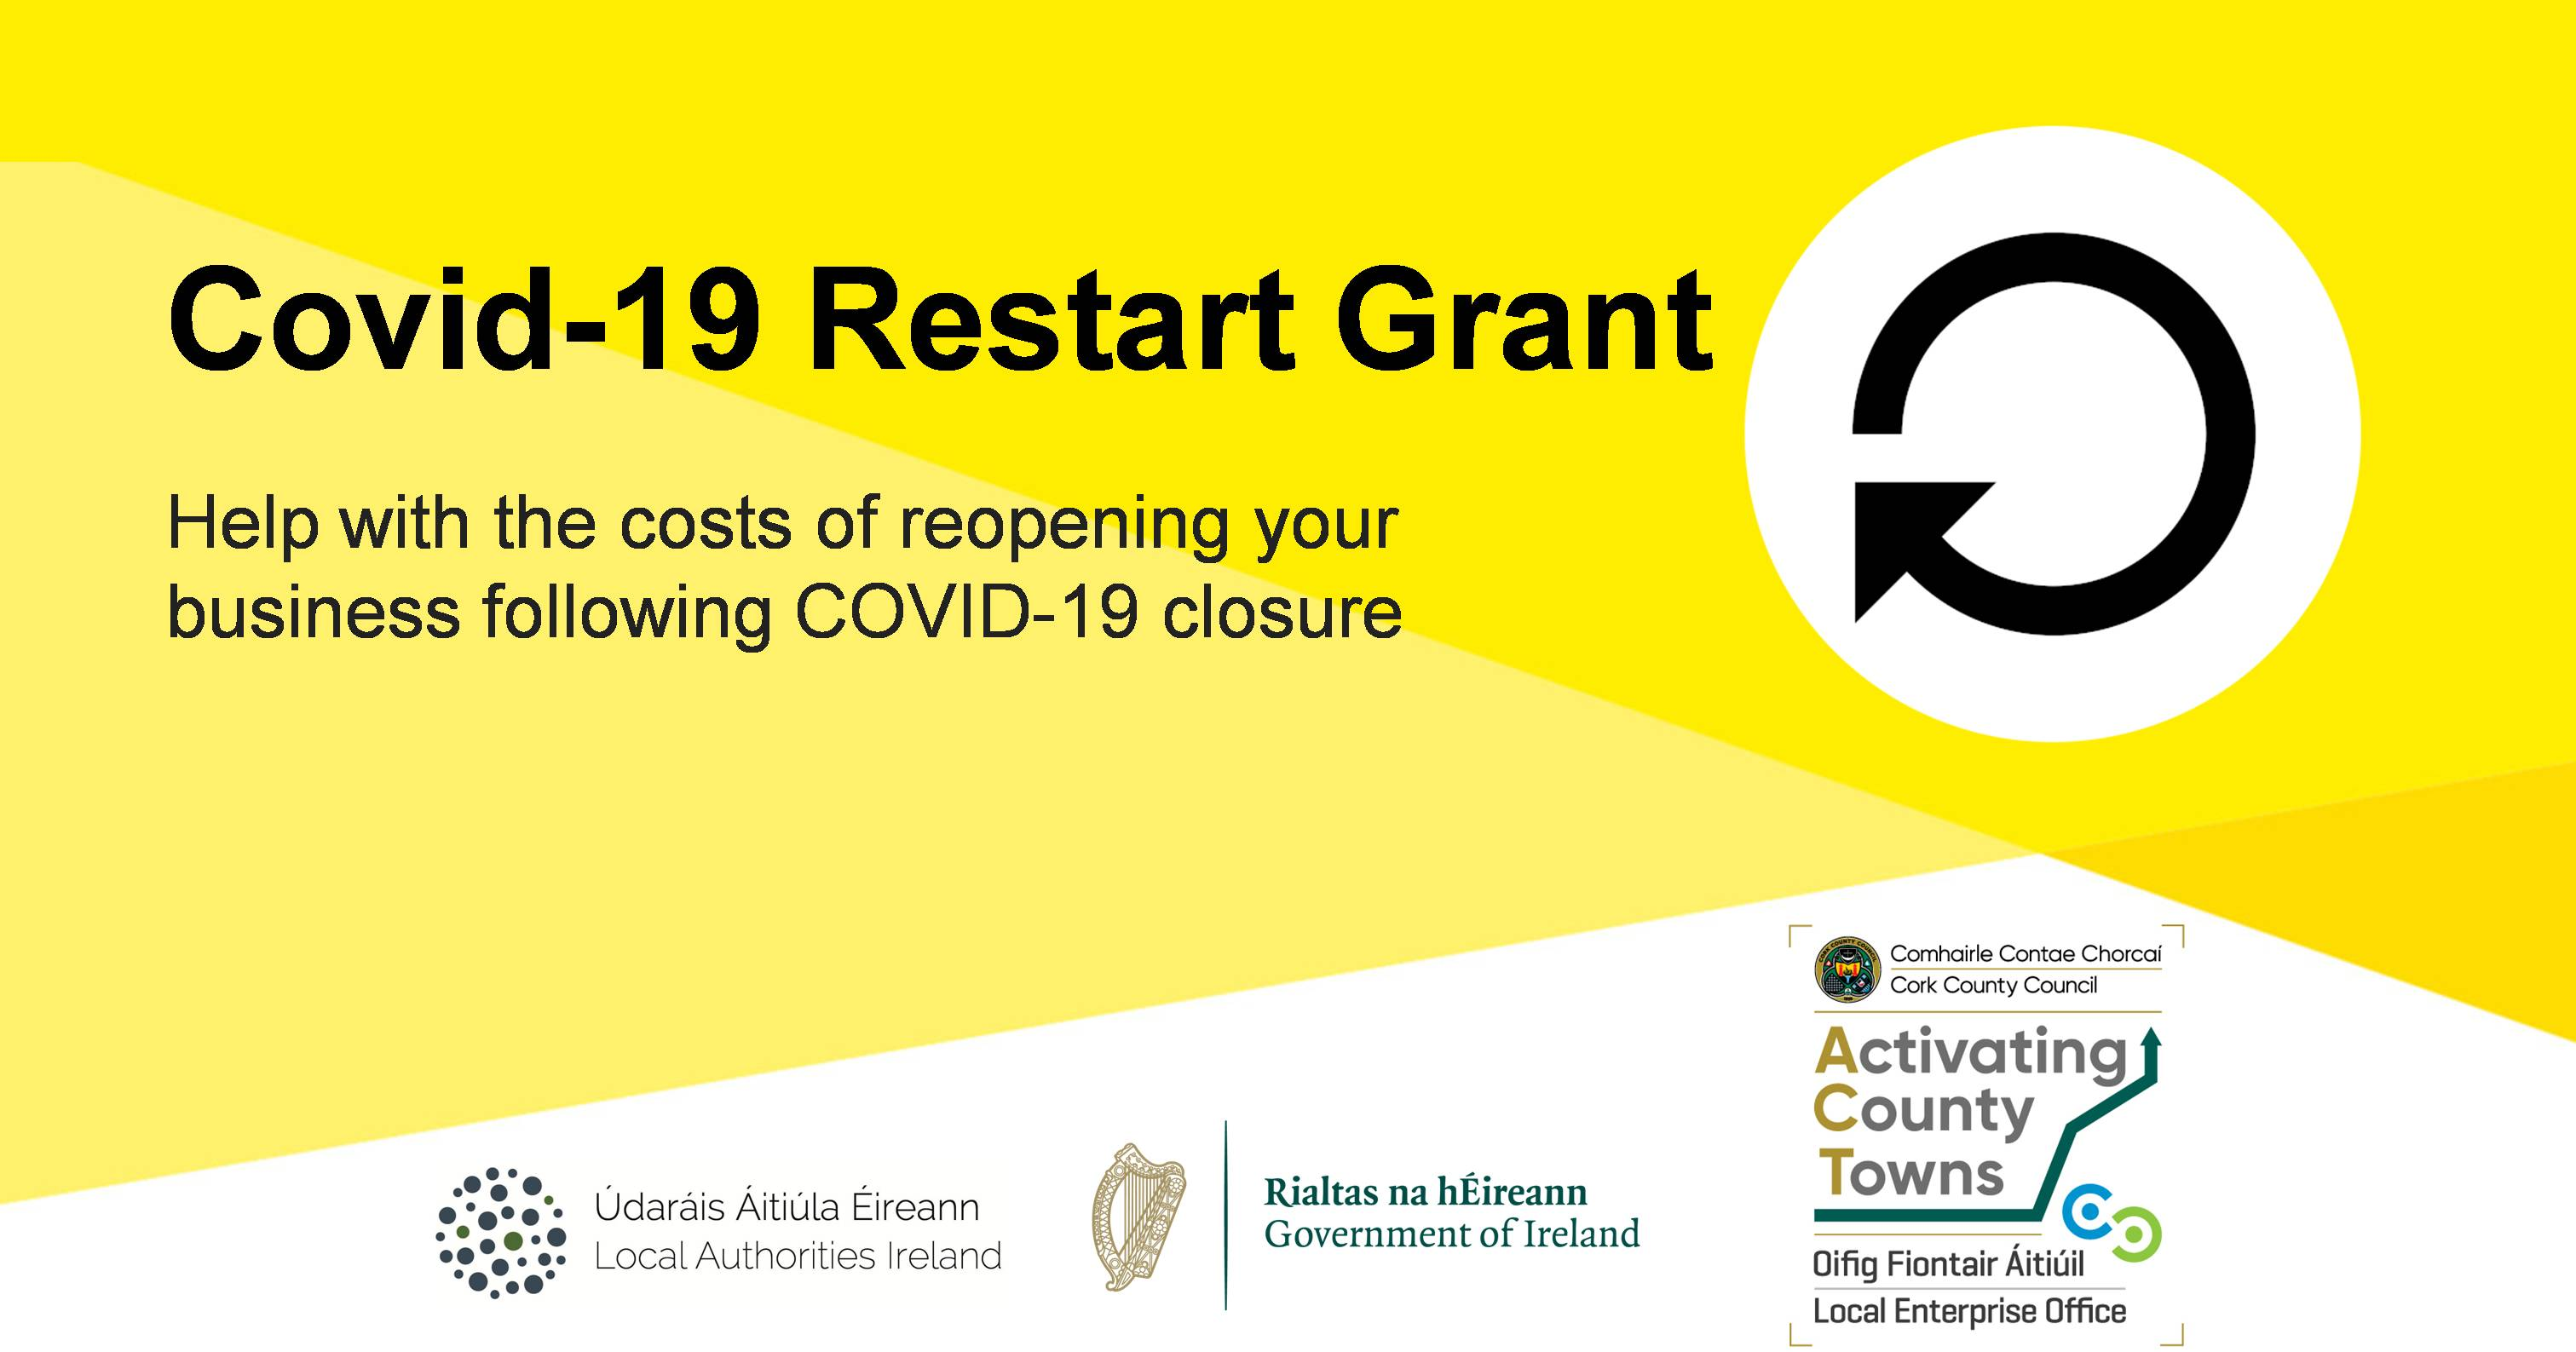 Applications Open for Cork County Restart Grant for Small Businesses